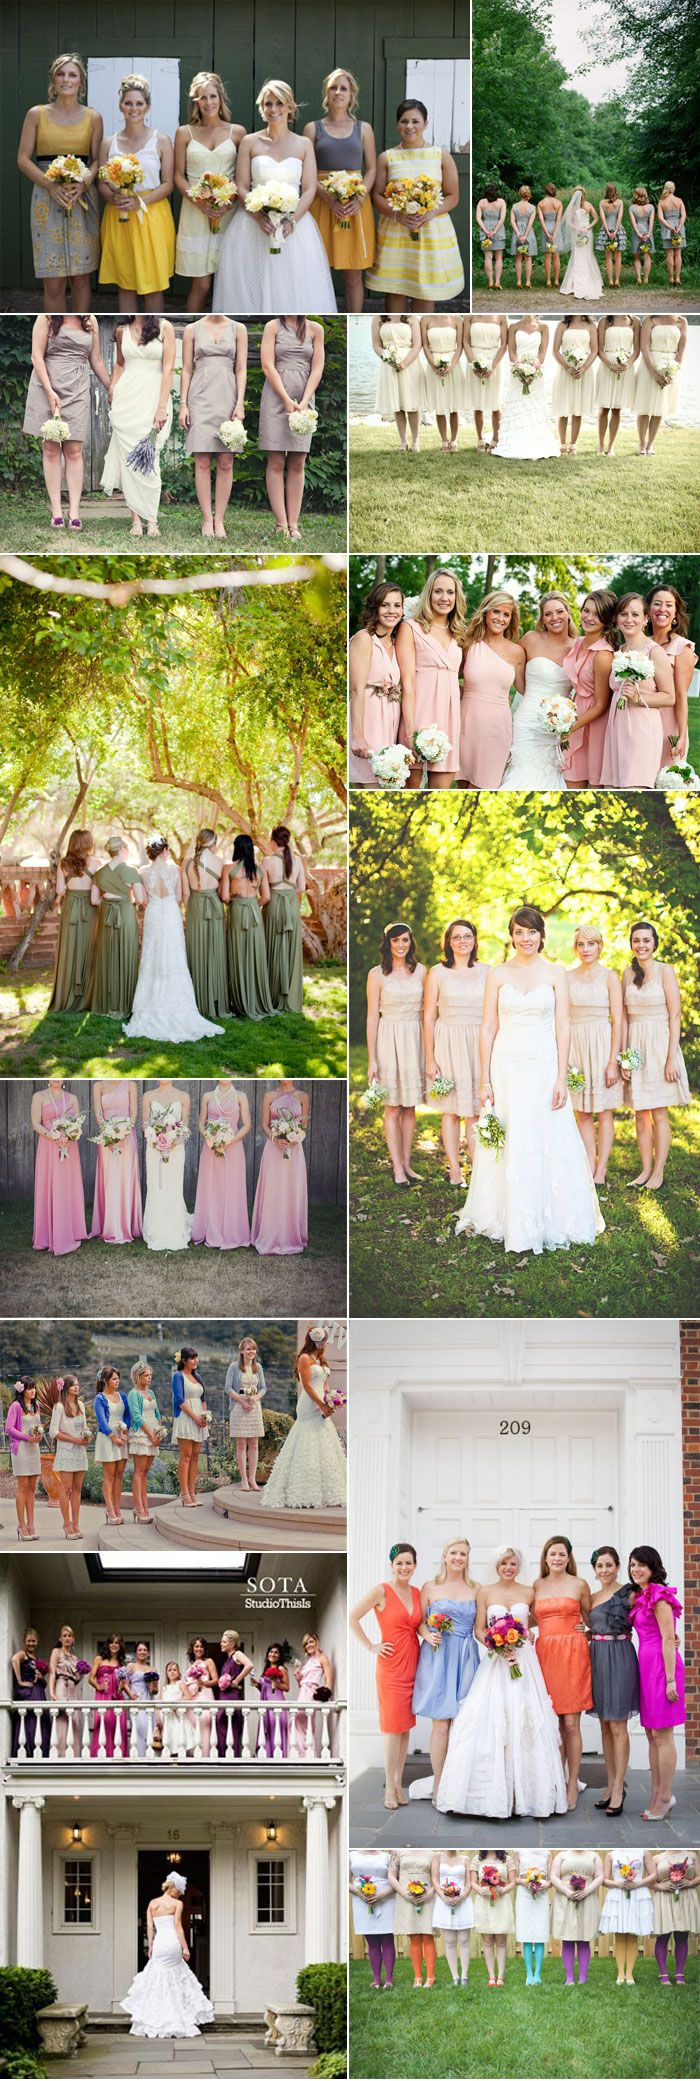 Bridesmaid wedding photography ideas